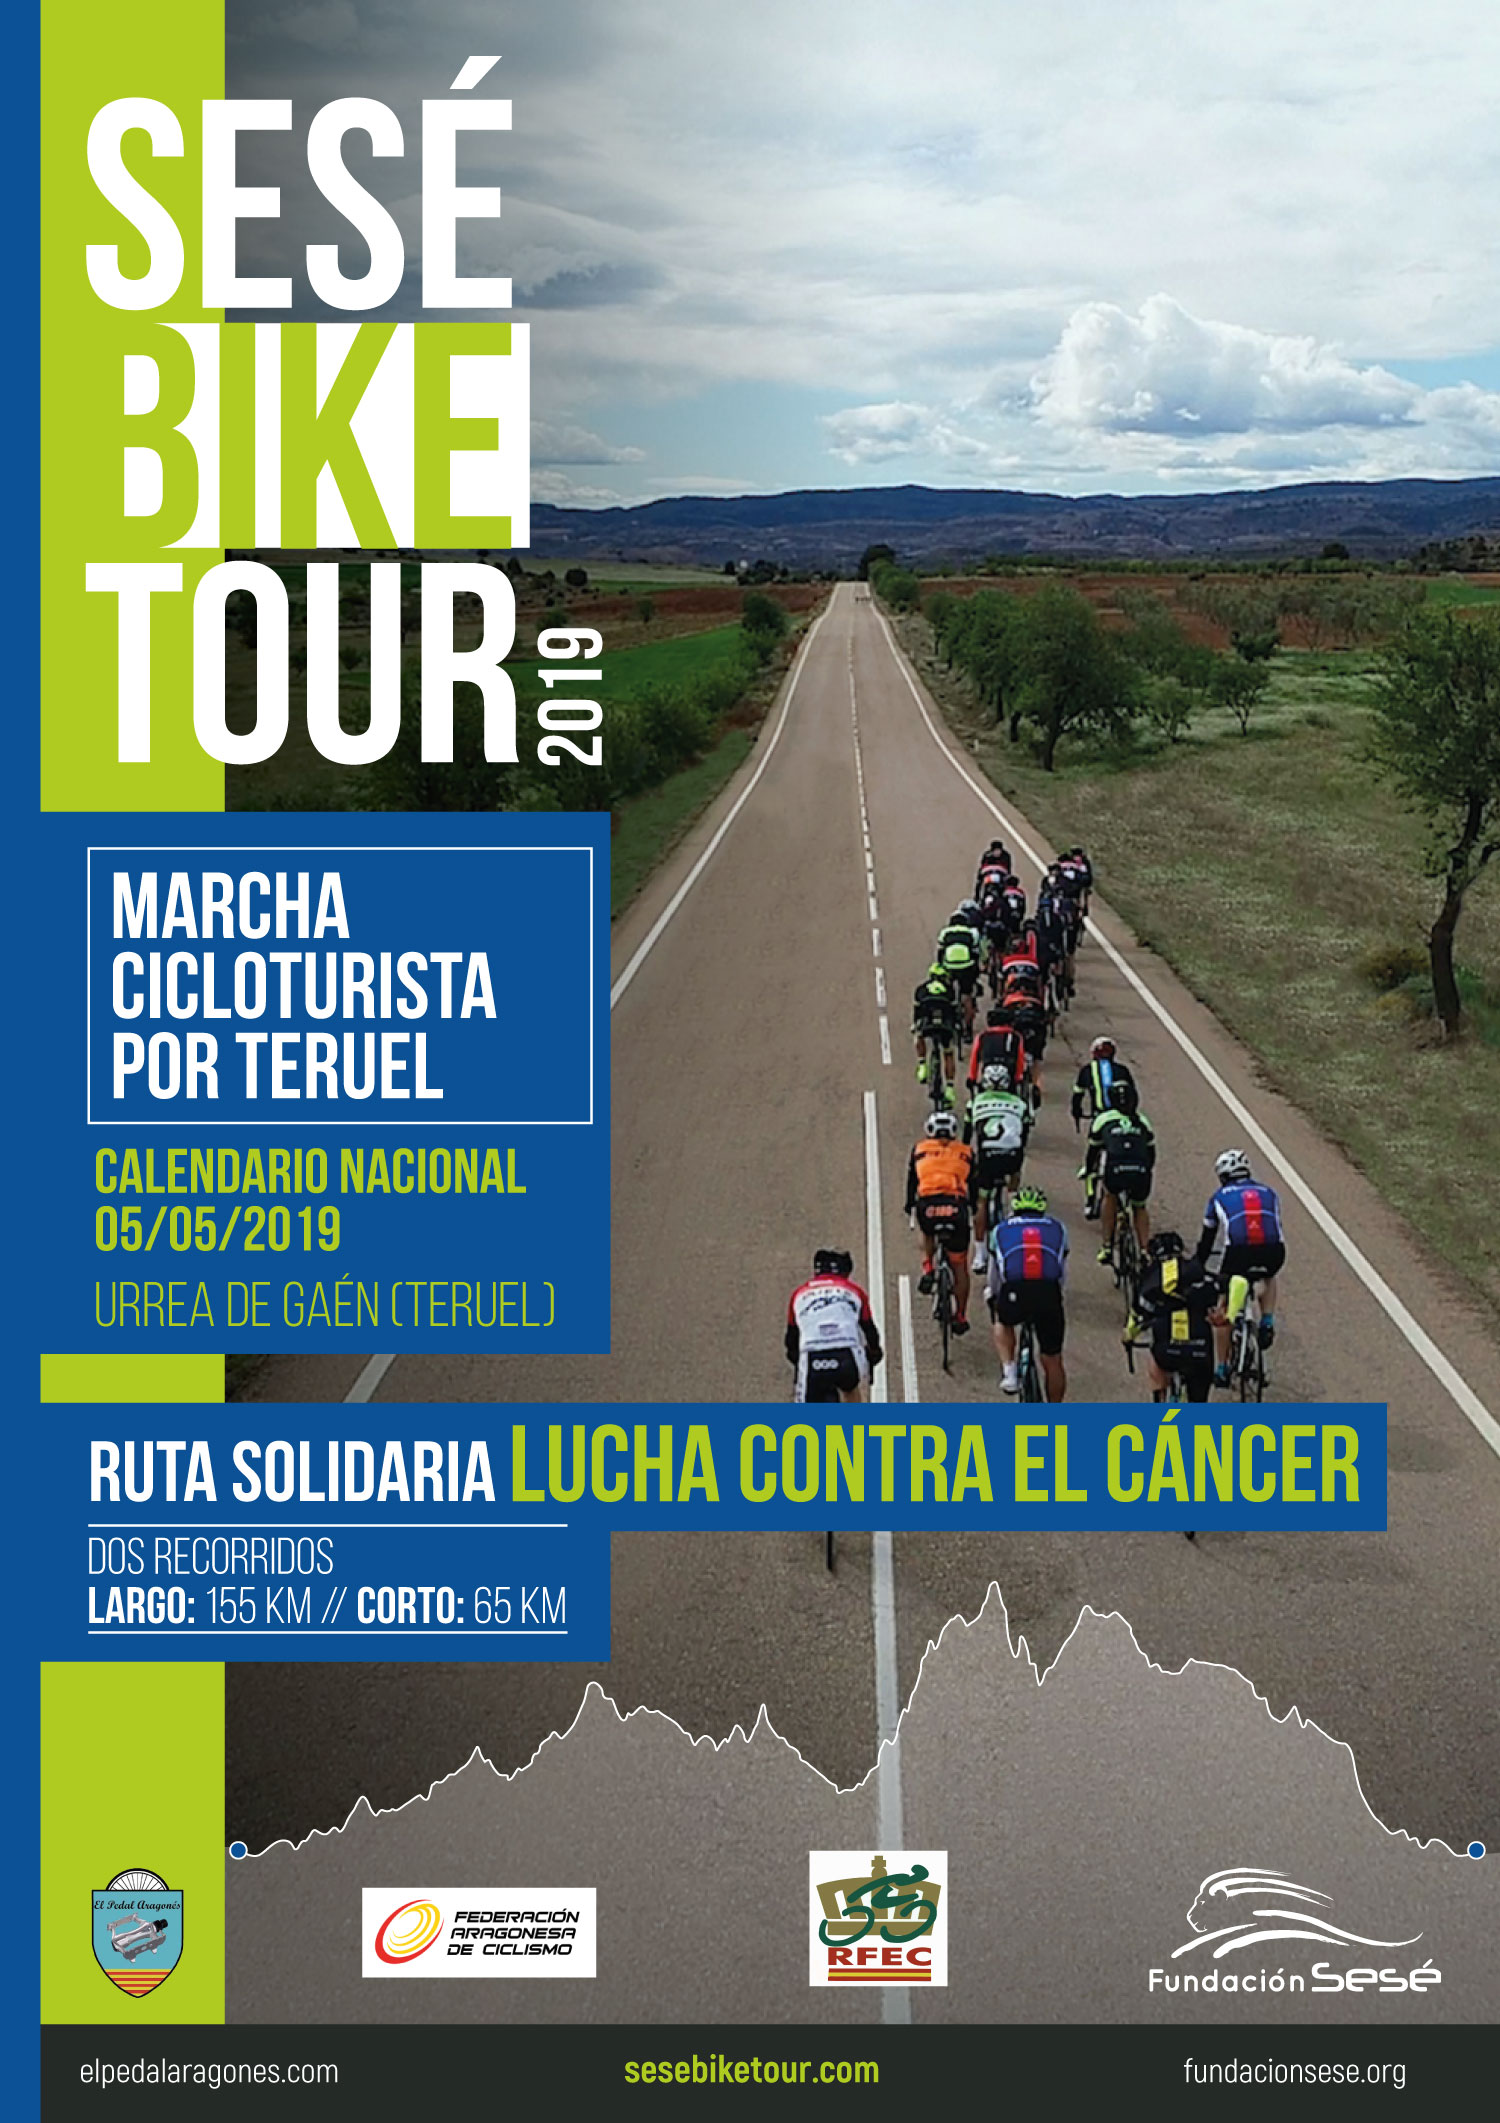 Cartel de la Sesé Bike Tour 2019